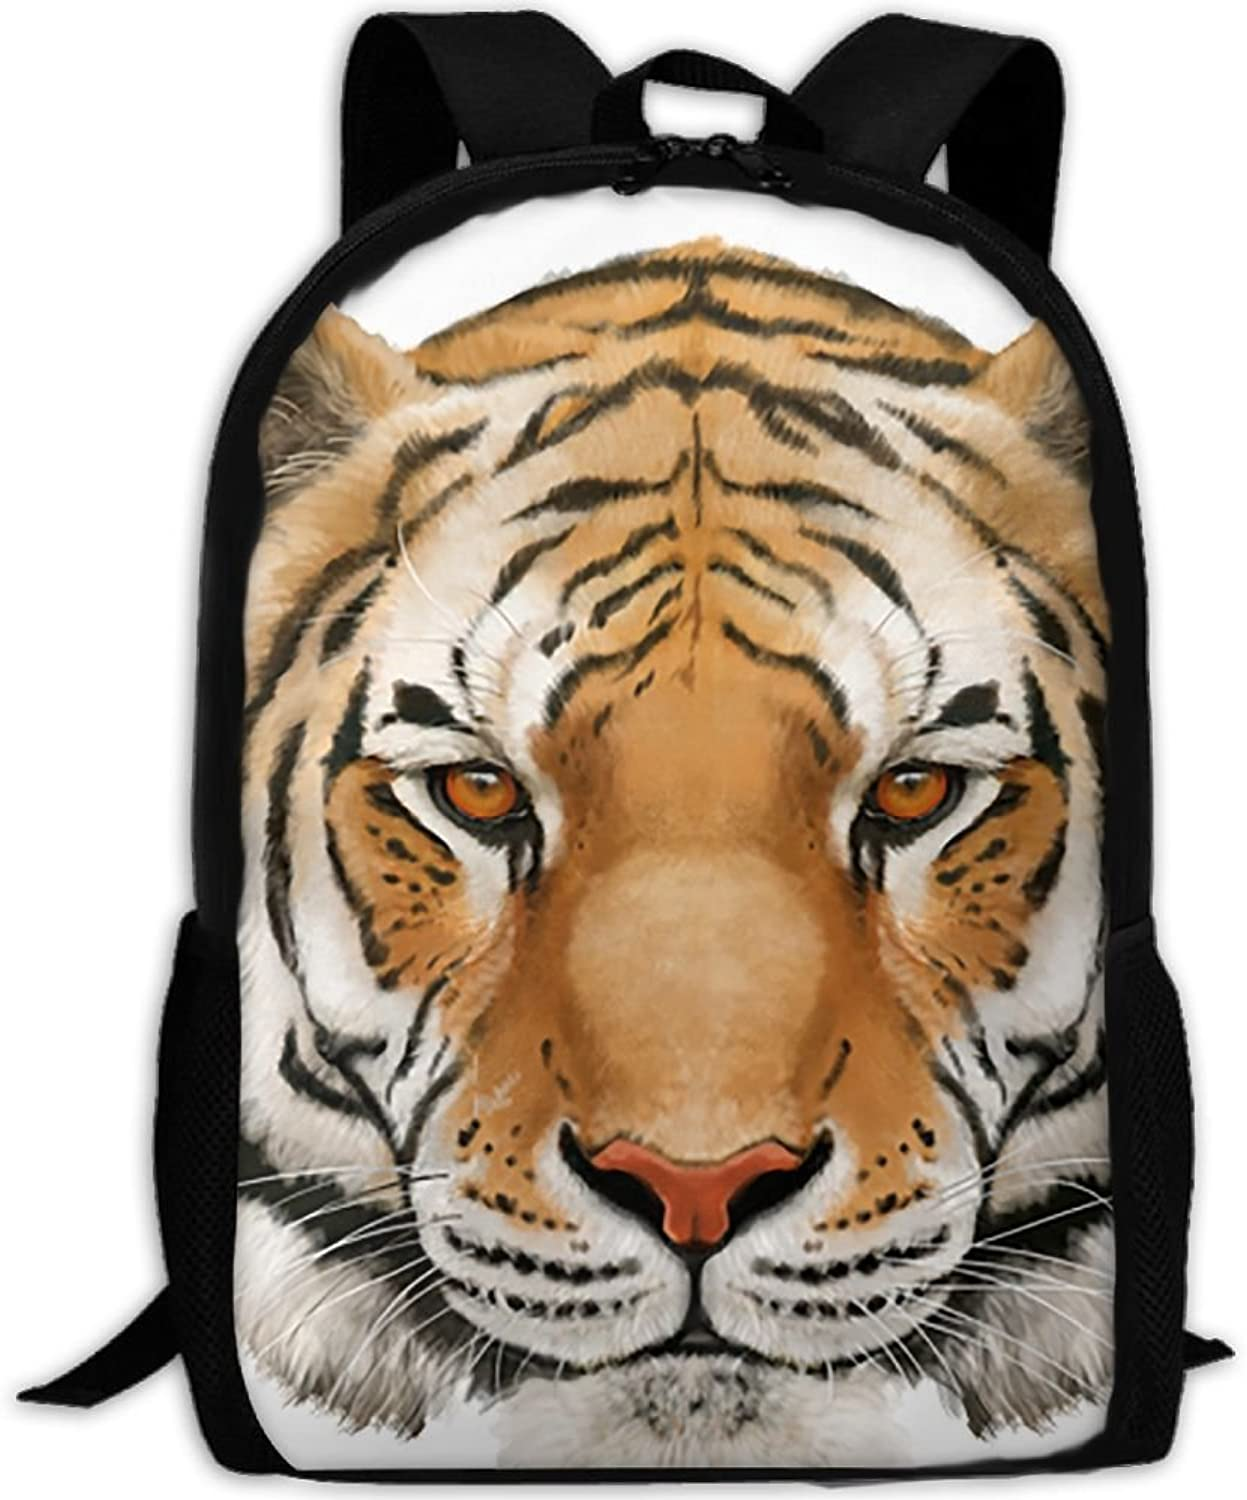 Backpack Laptop Travel Hiking School Bags Drawn Tiger Daypack Shoulder Bag